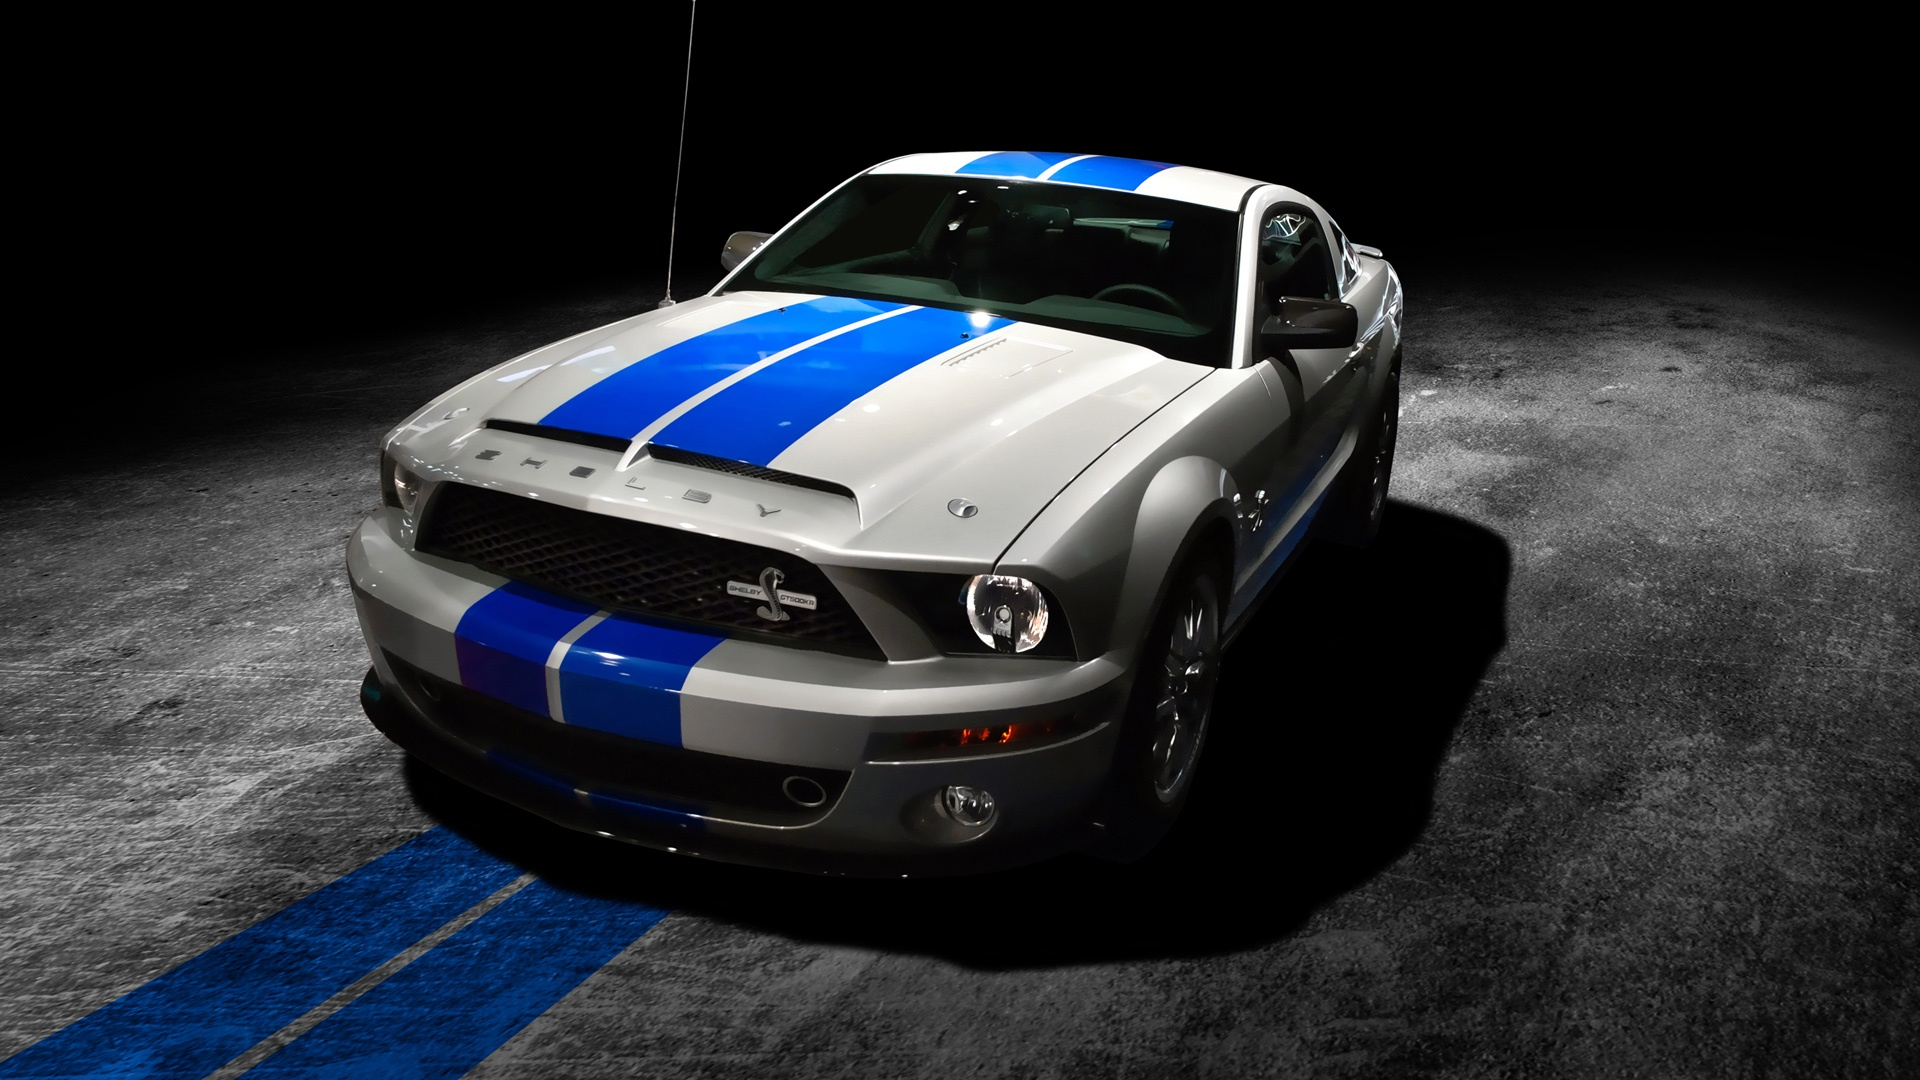 Ford Mustang Shelby GT500 2013 Wallpapers HD Wallpapers 1920x1080